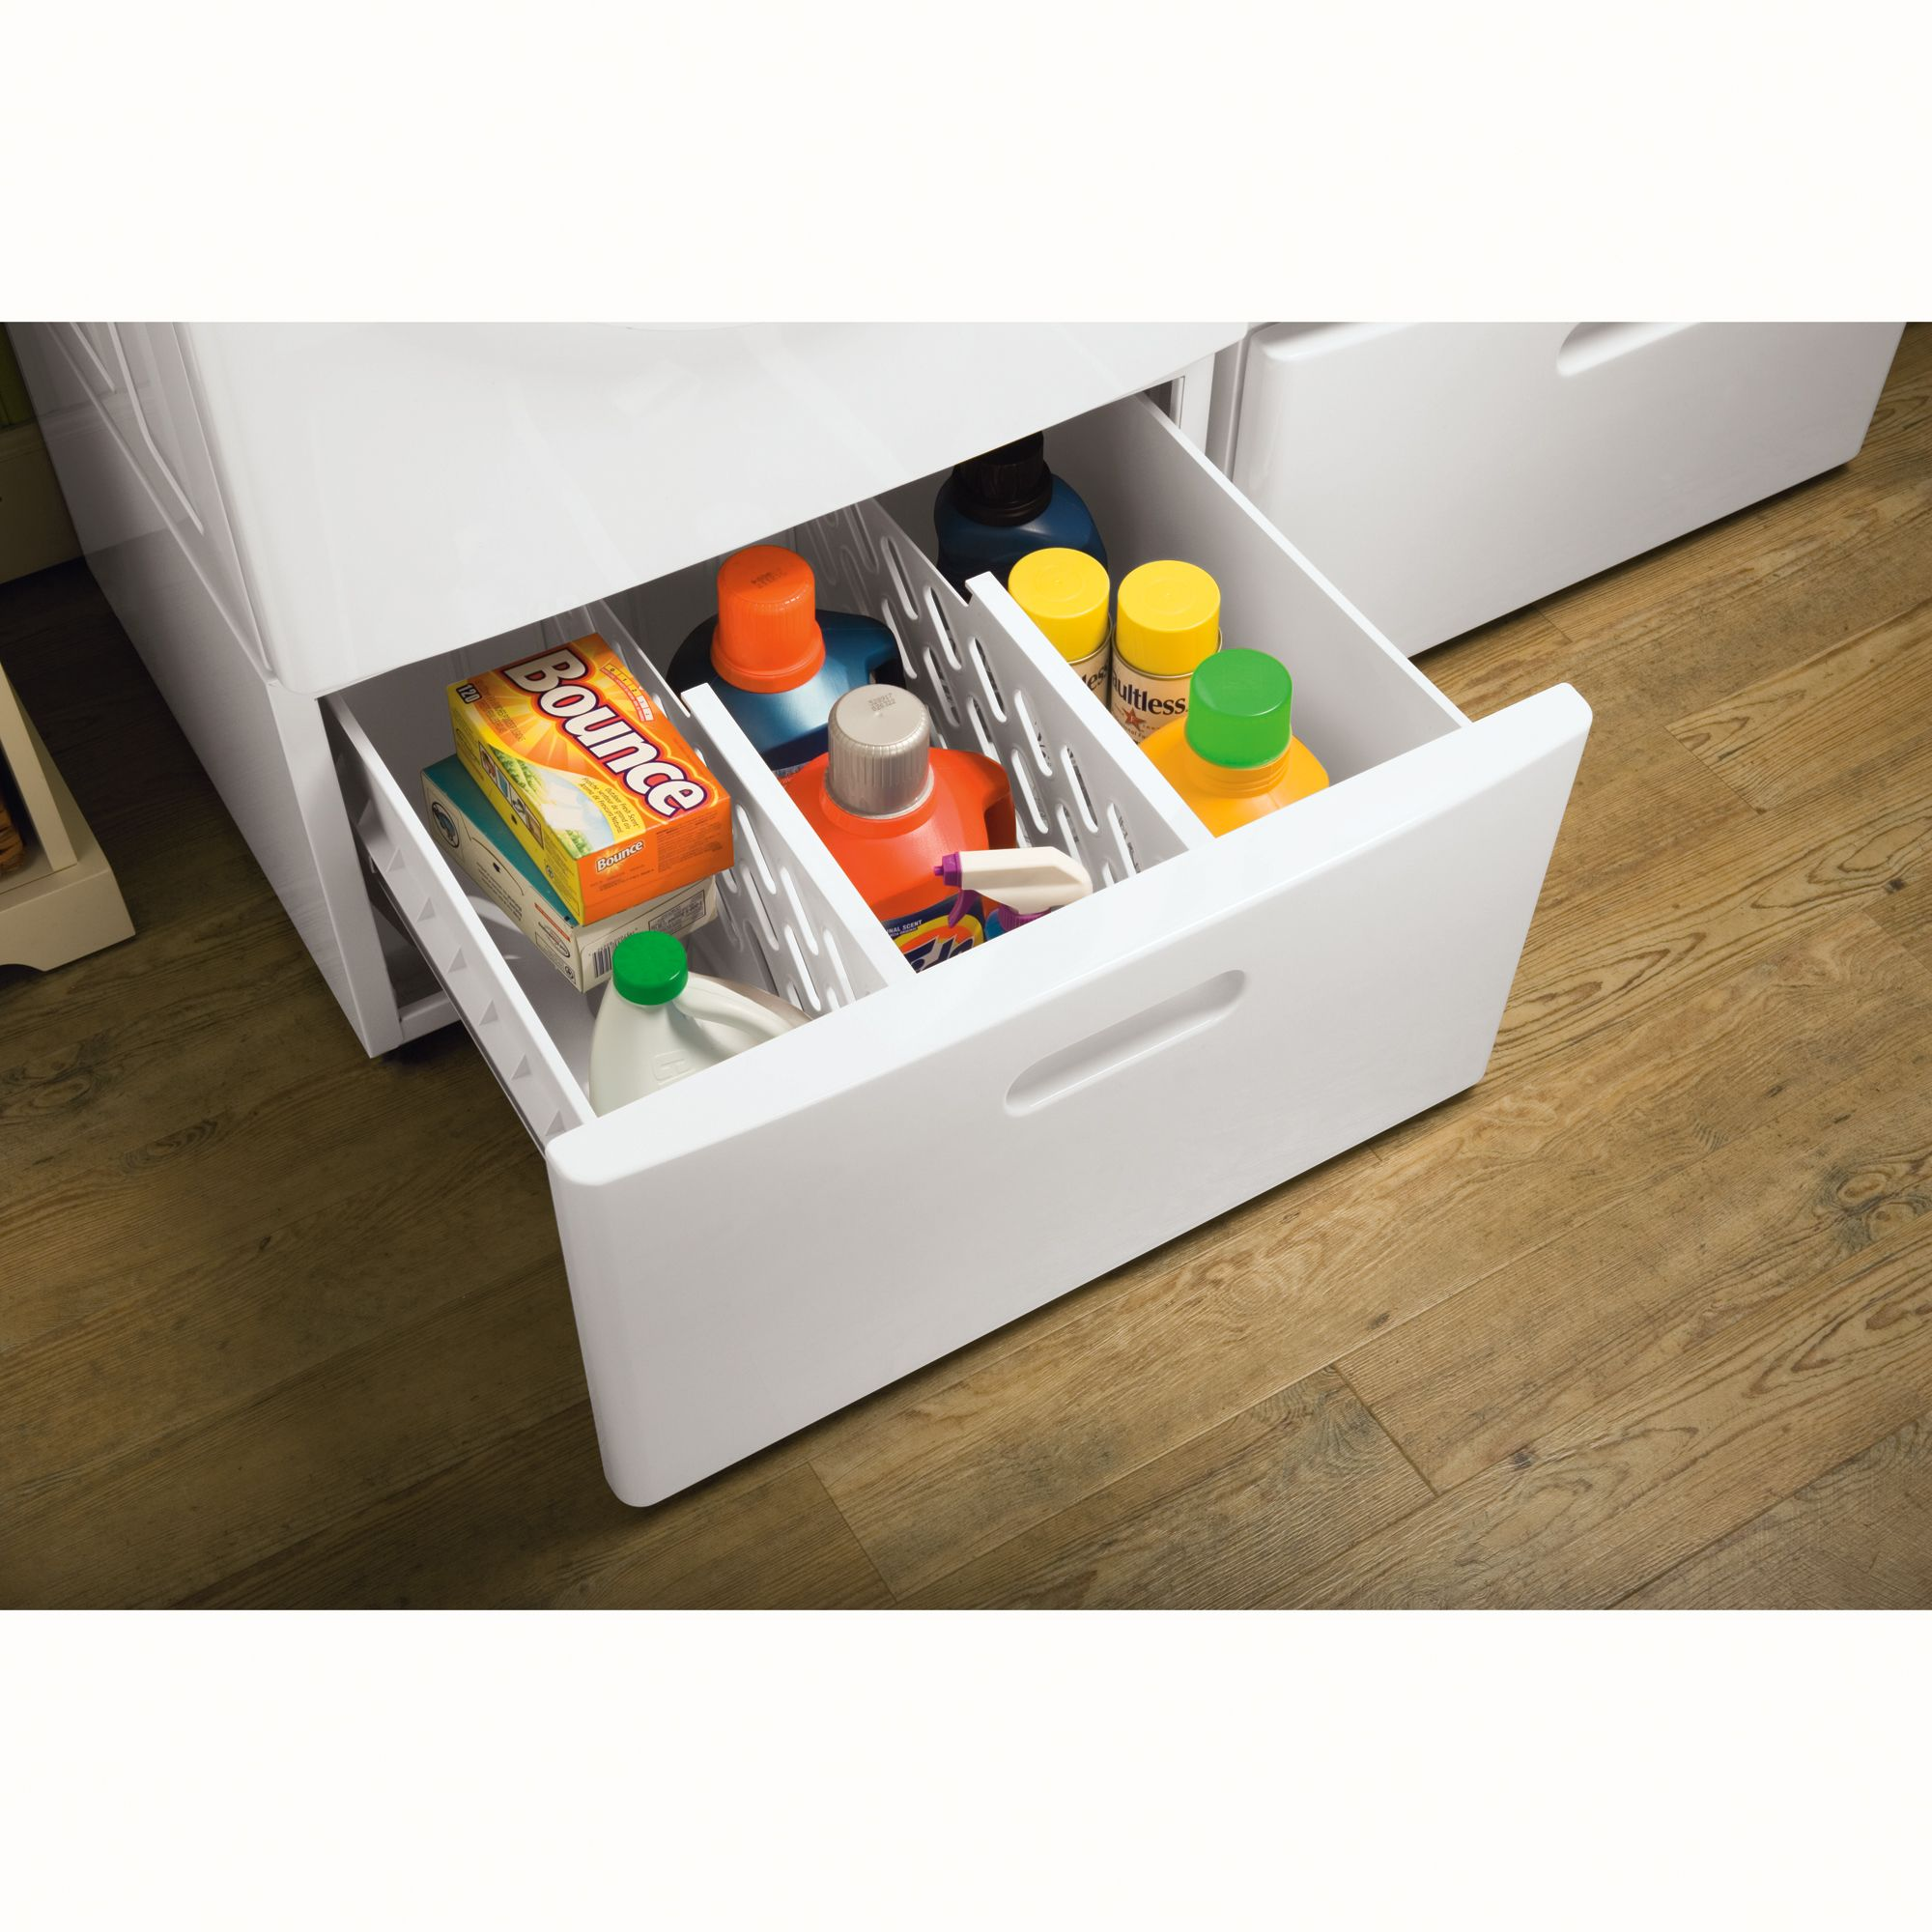 Frigidaire Affinity 15 in. Pedestal Drawer